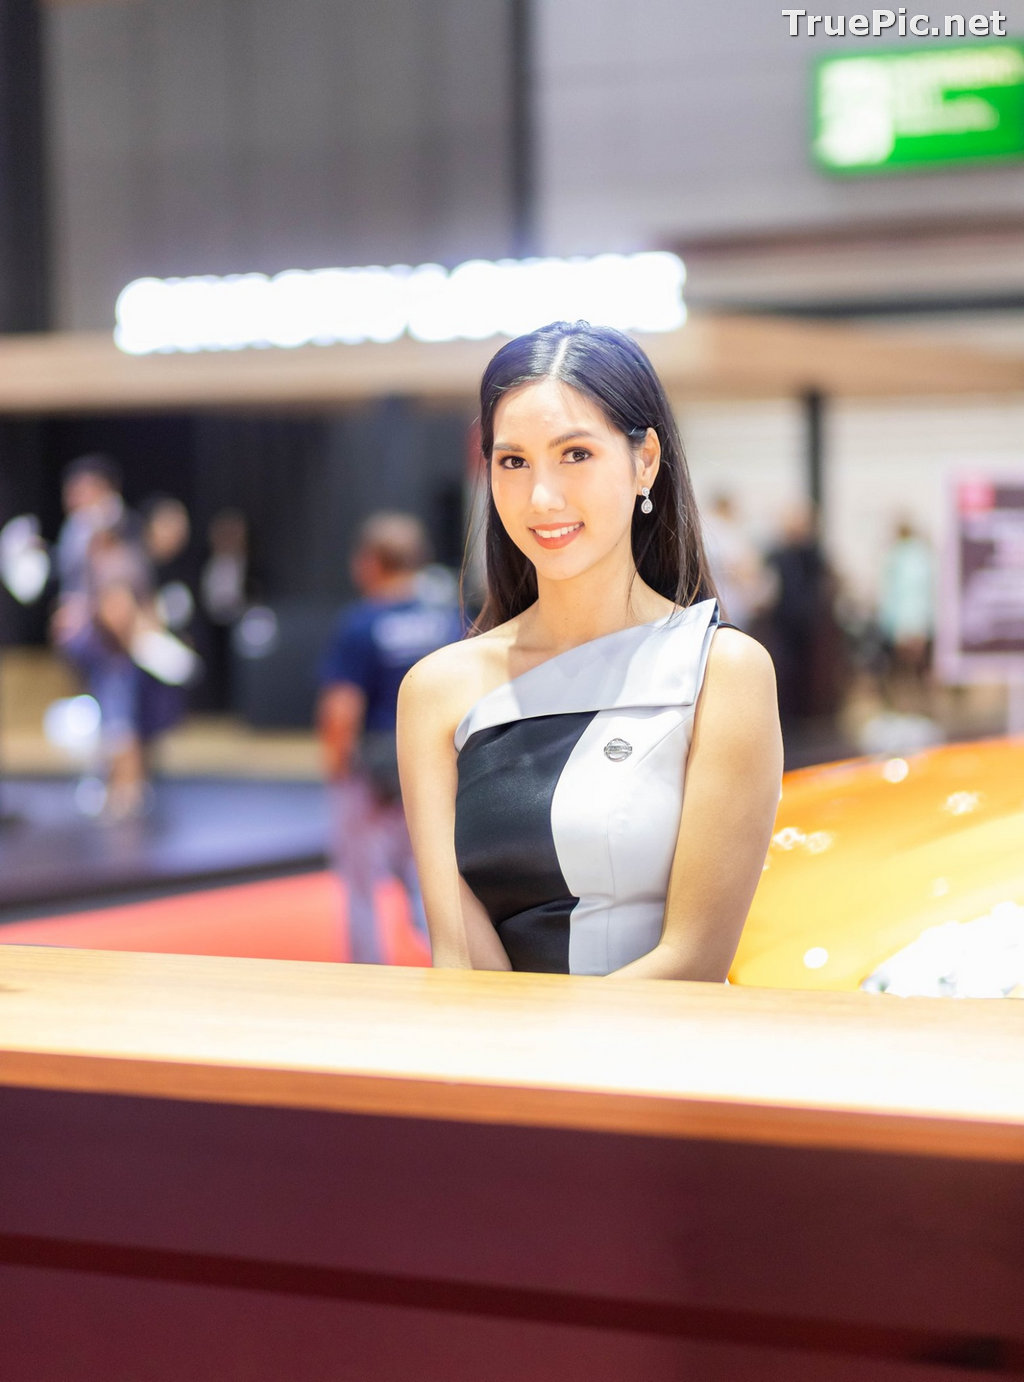 Image Thailand Racing Model at BIG Motor Sale 2019 - TruePic.net - Picture-9